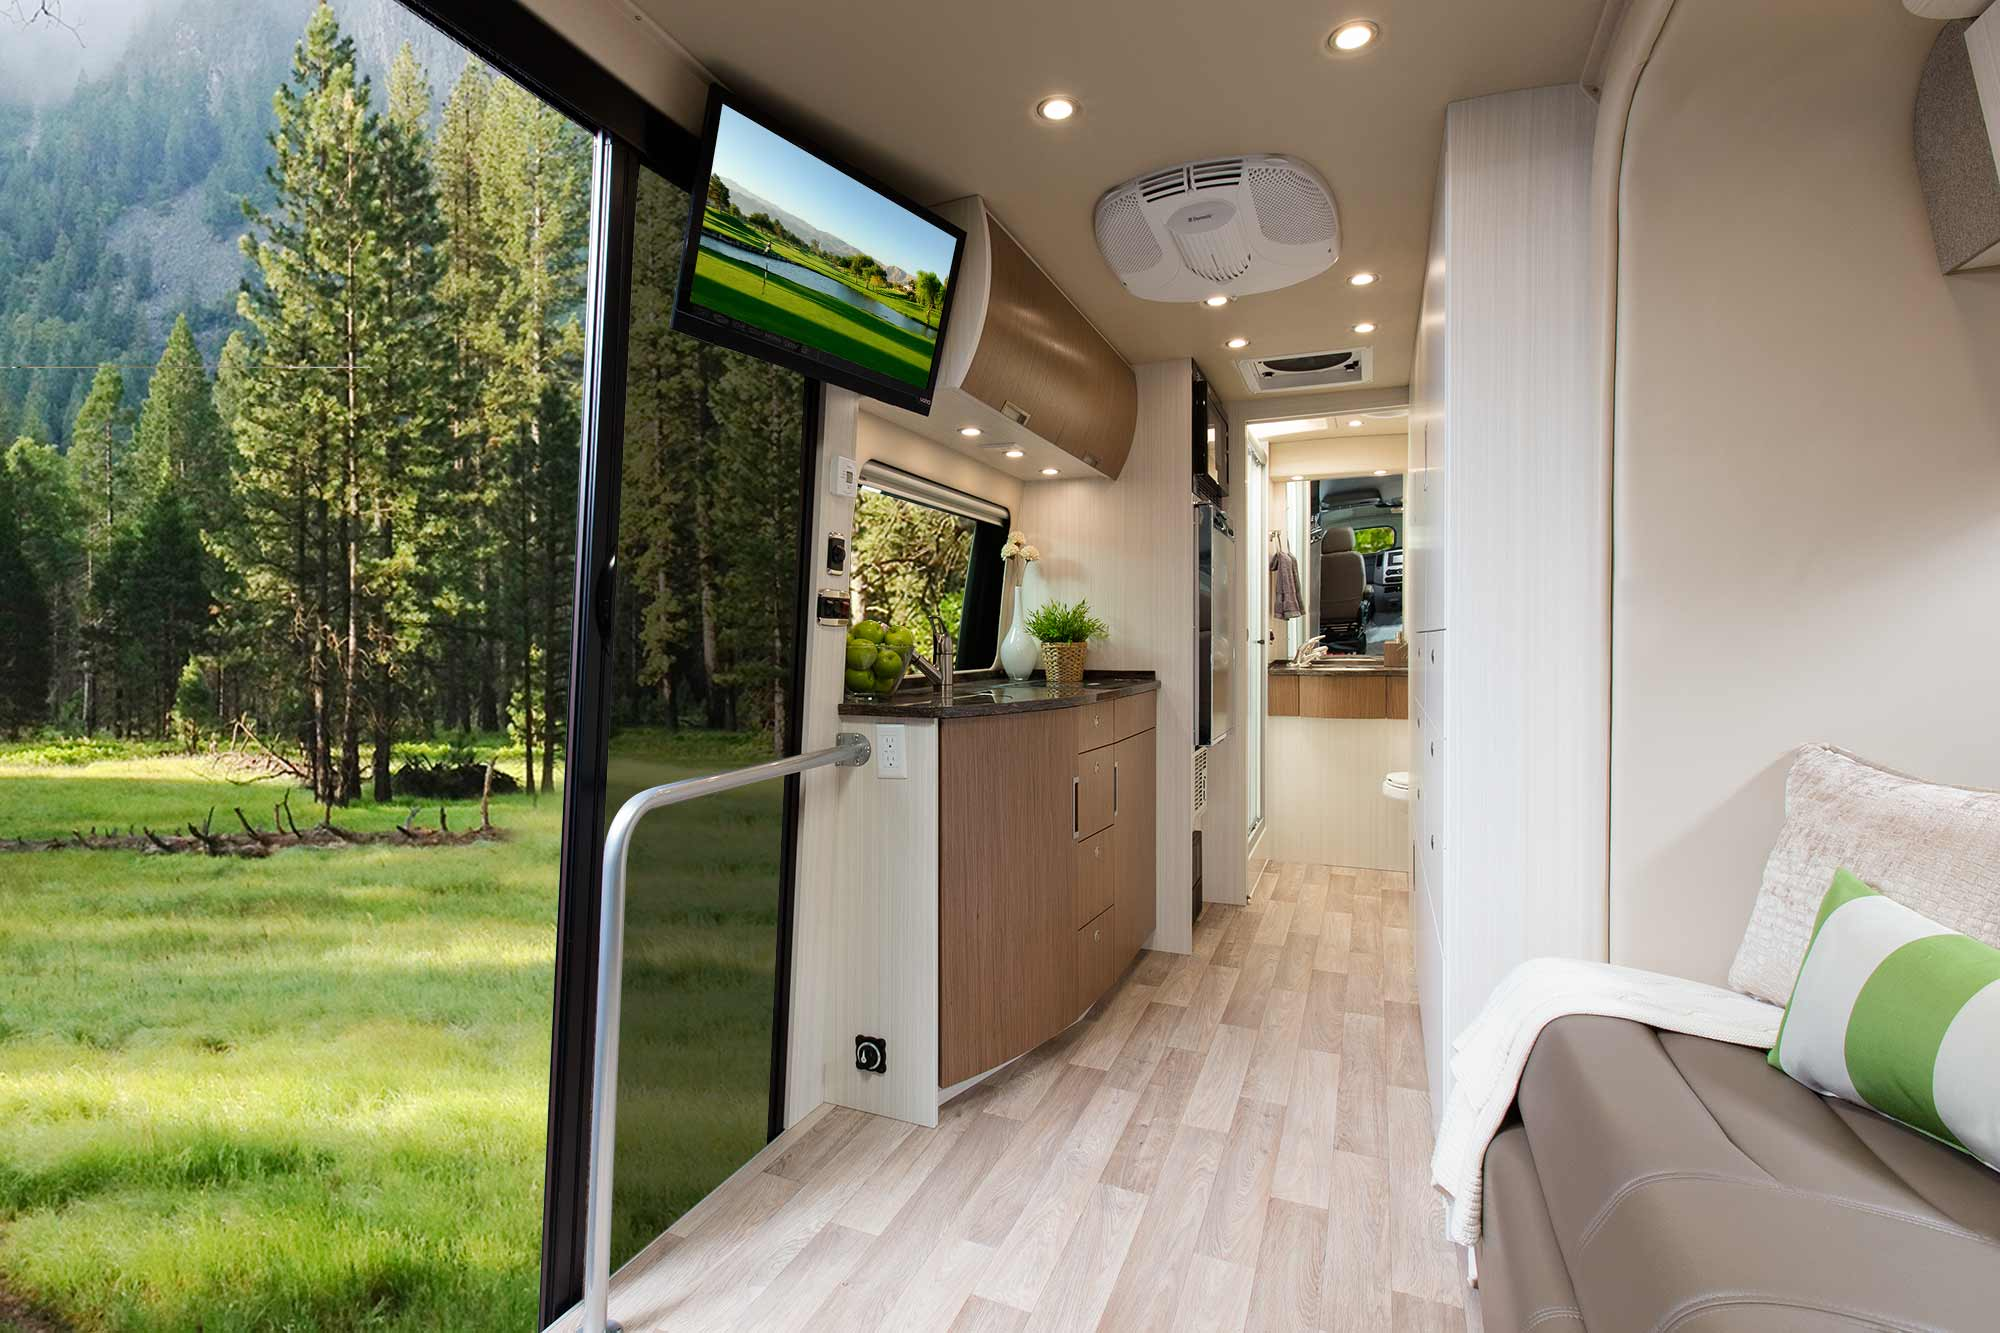 The best view of  any  coach! The BlissRV Mercedes sliding door gives expansive views from the sofa...and bed...and provides an openness that RVs can't recreate. Full-size sliding screen door lets you enjoy nature in comfort.